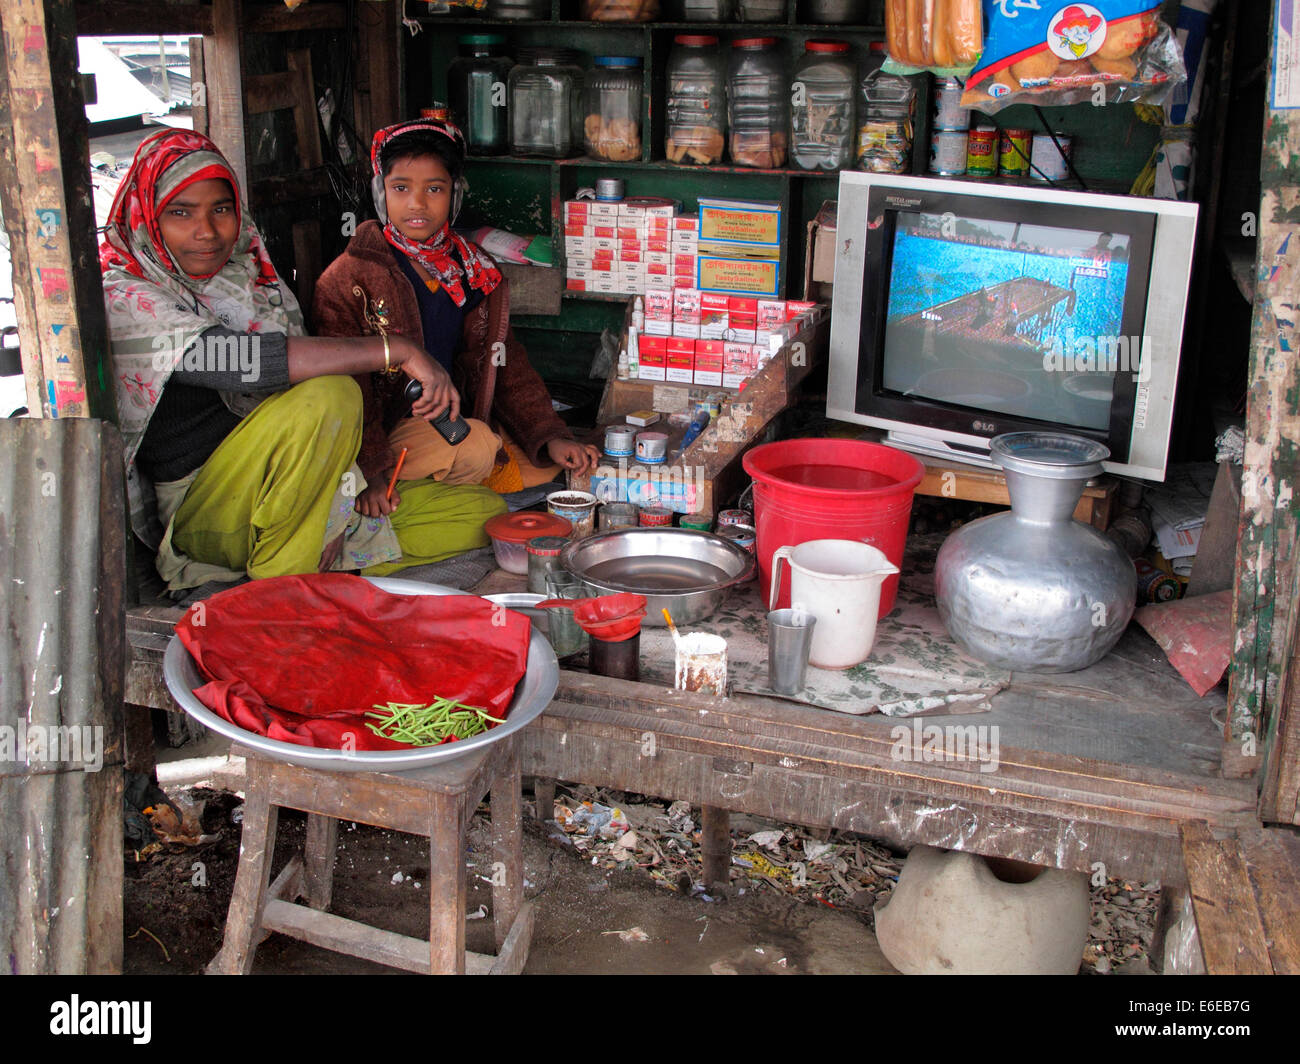 Kids running family store,road side vendors in Bangladesh,Hi teak shed, - Stock Image